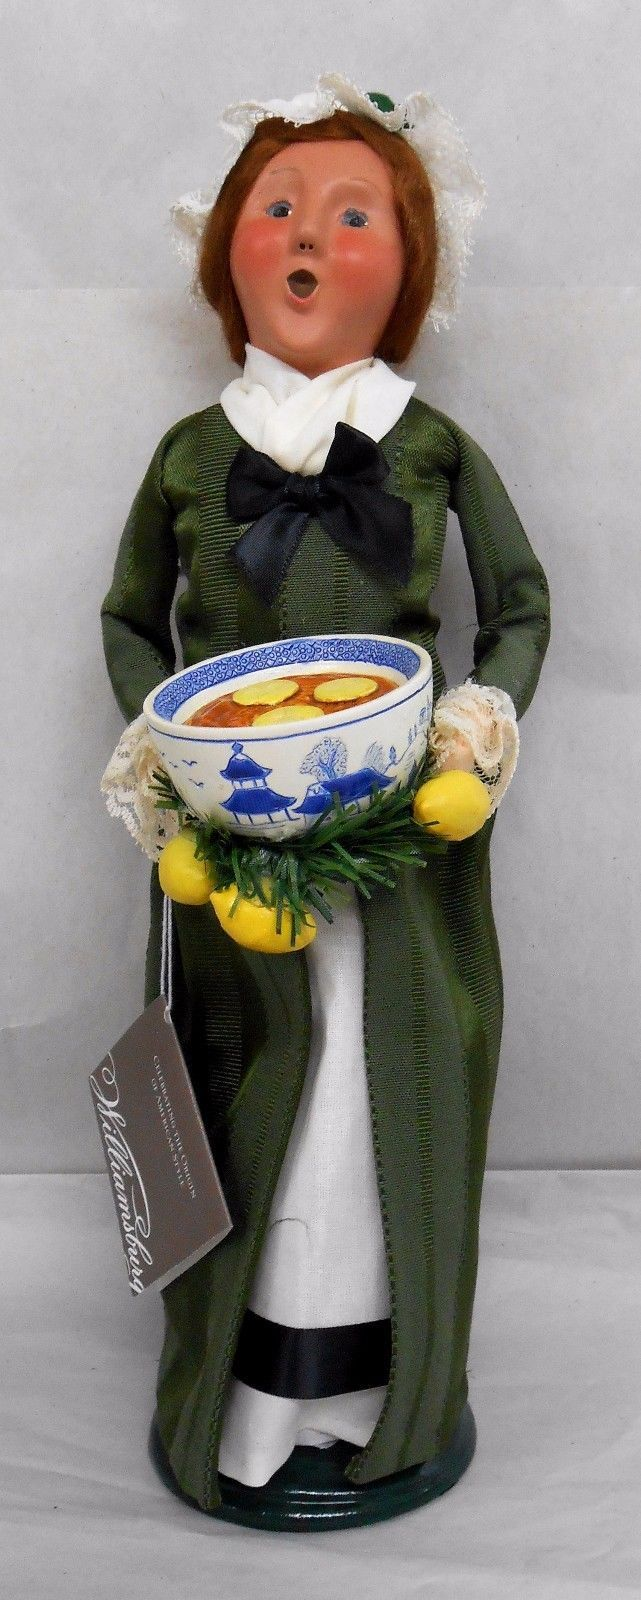 BYERS CHOICE 2006 Carolers Signed Williamsburg THANKSGIVING LADY New w/tag JF | eBay